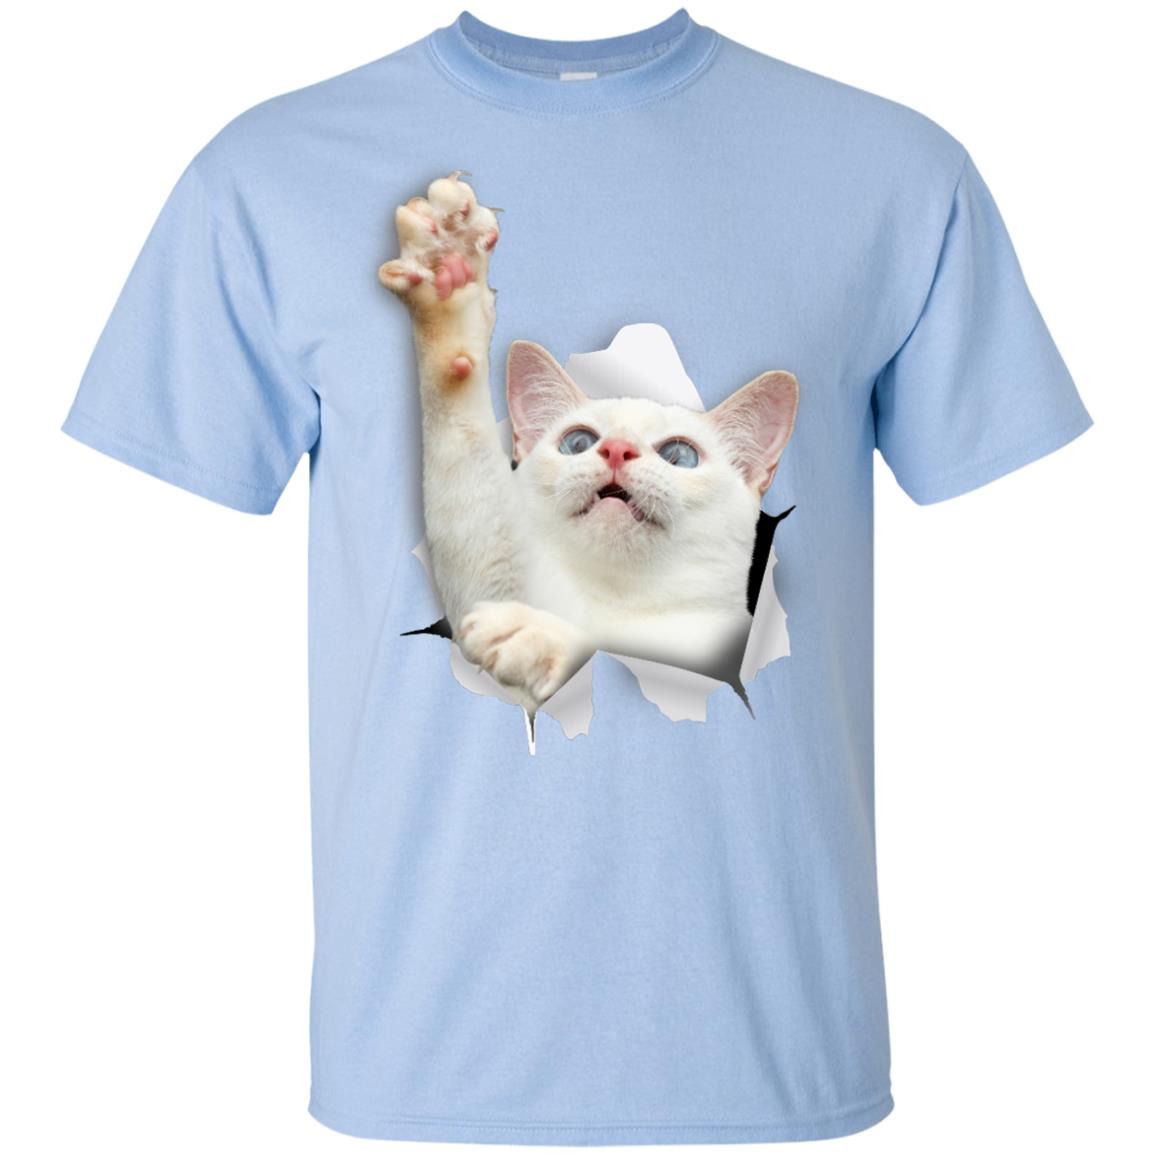 White Cat Reaching Youth Cotton T-Shirt